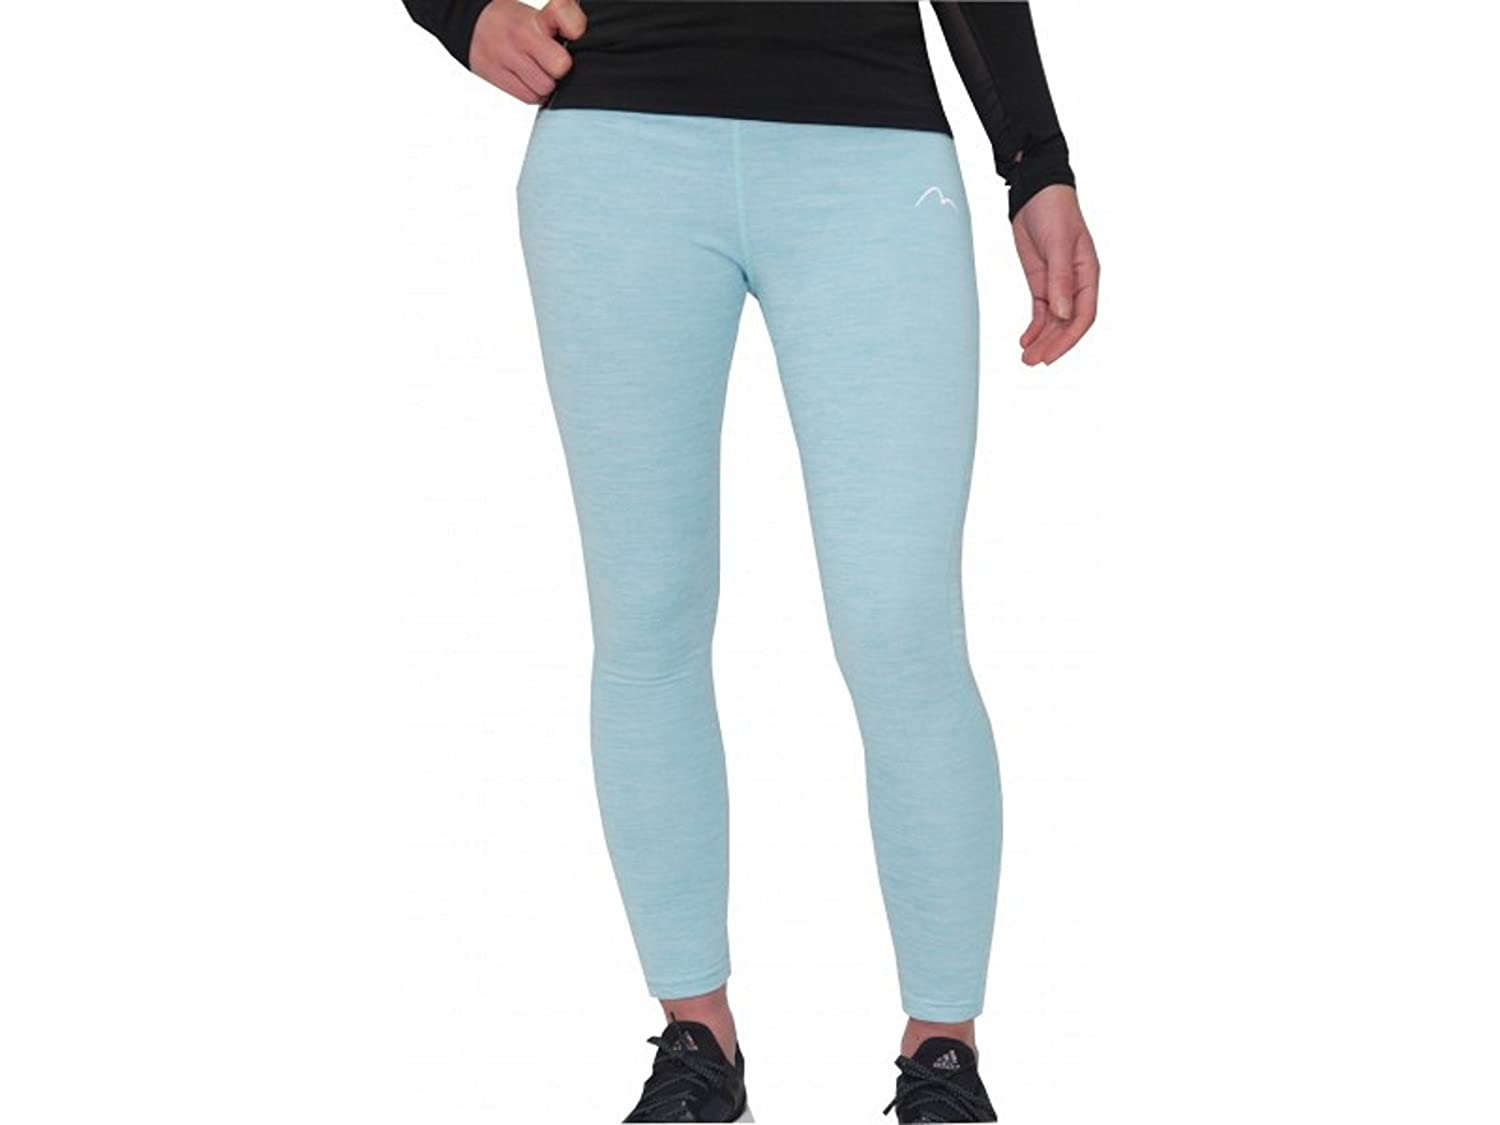 More Mile Heather Girls Junior Running Long Tights